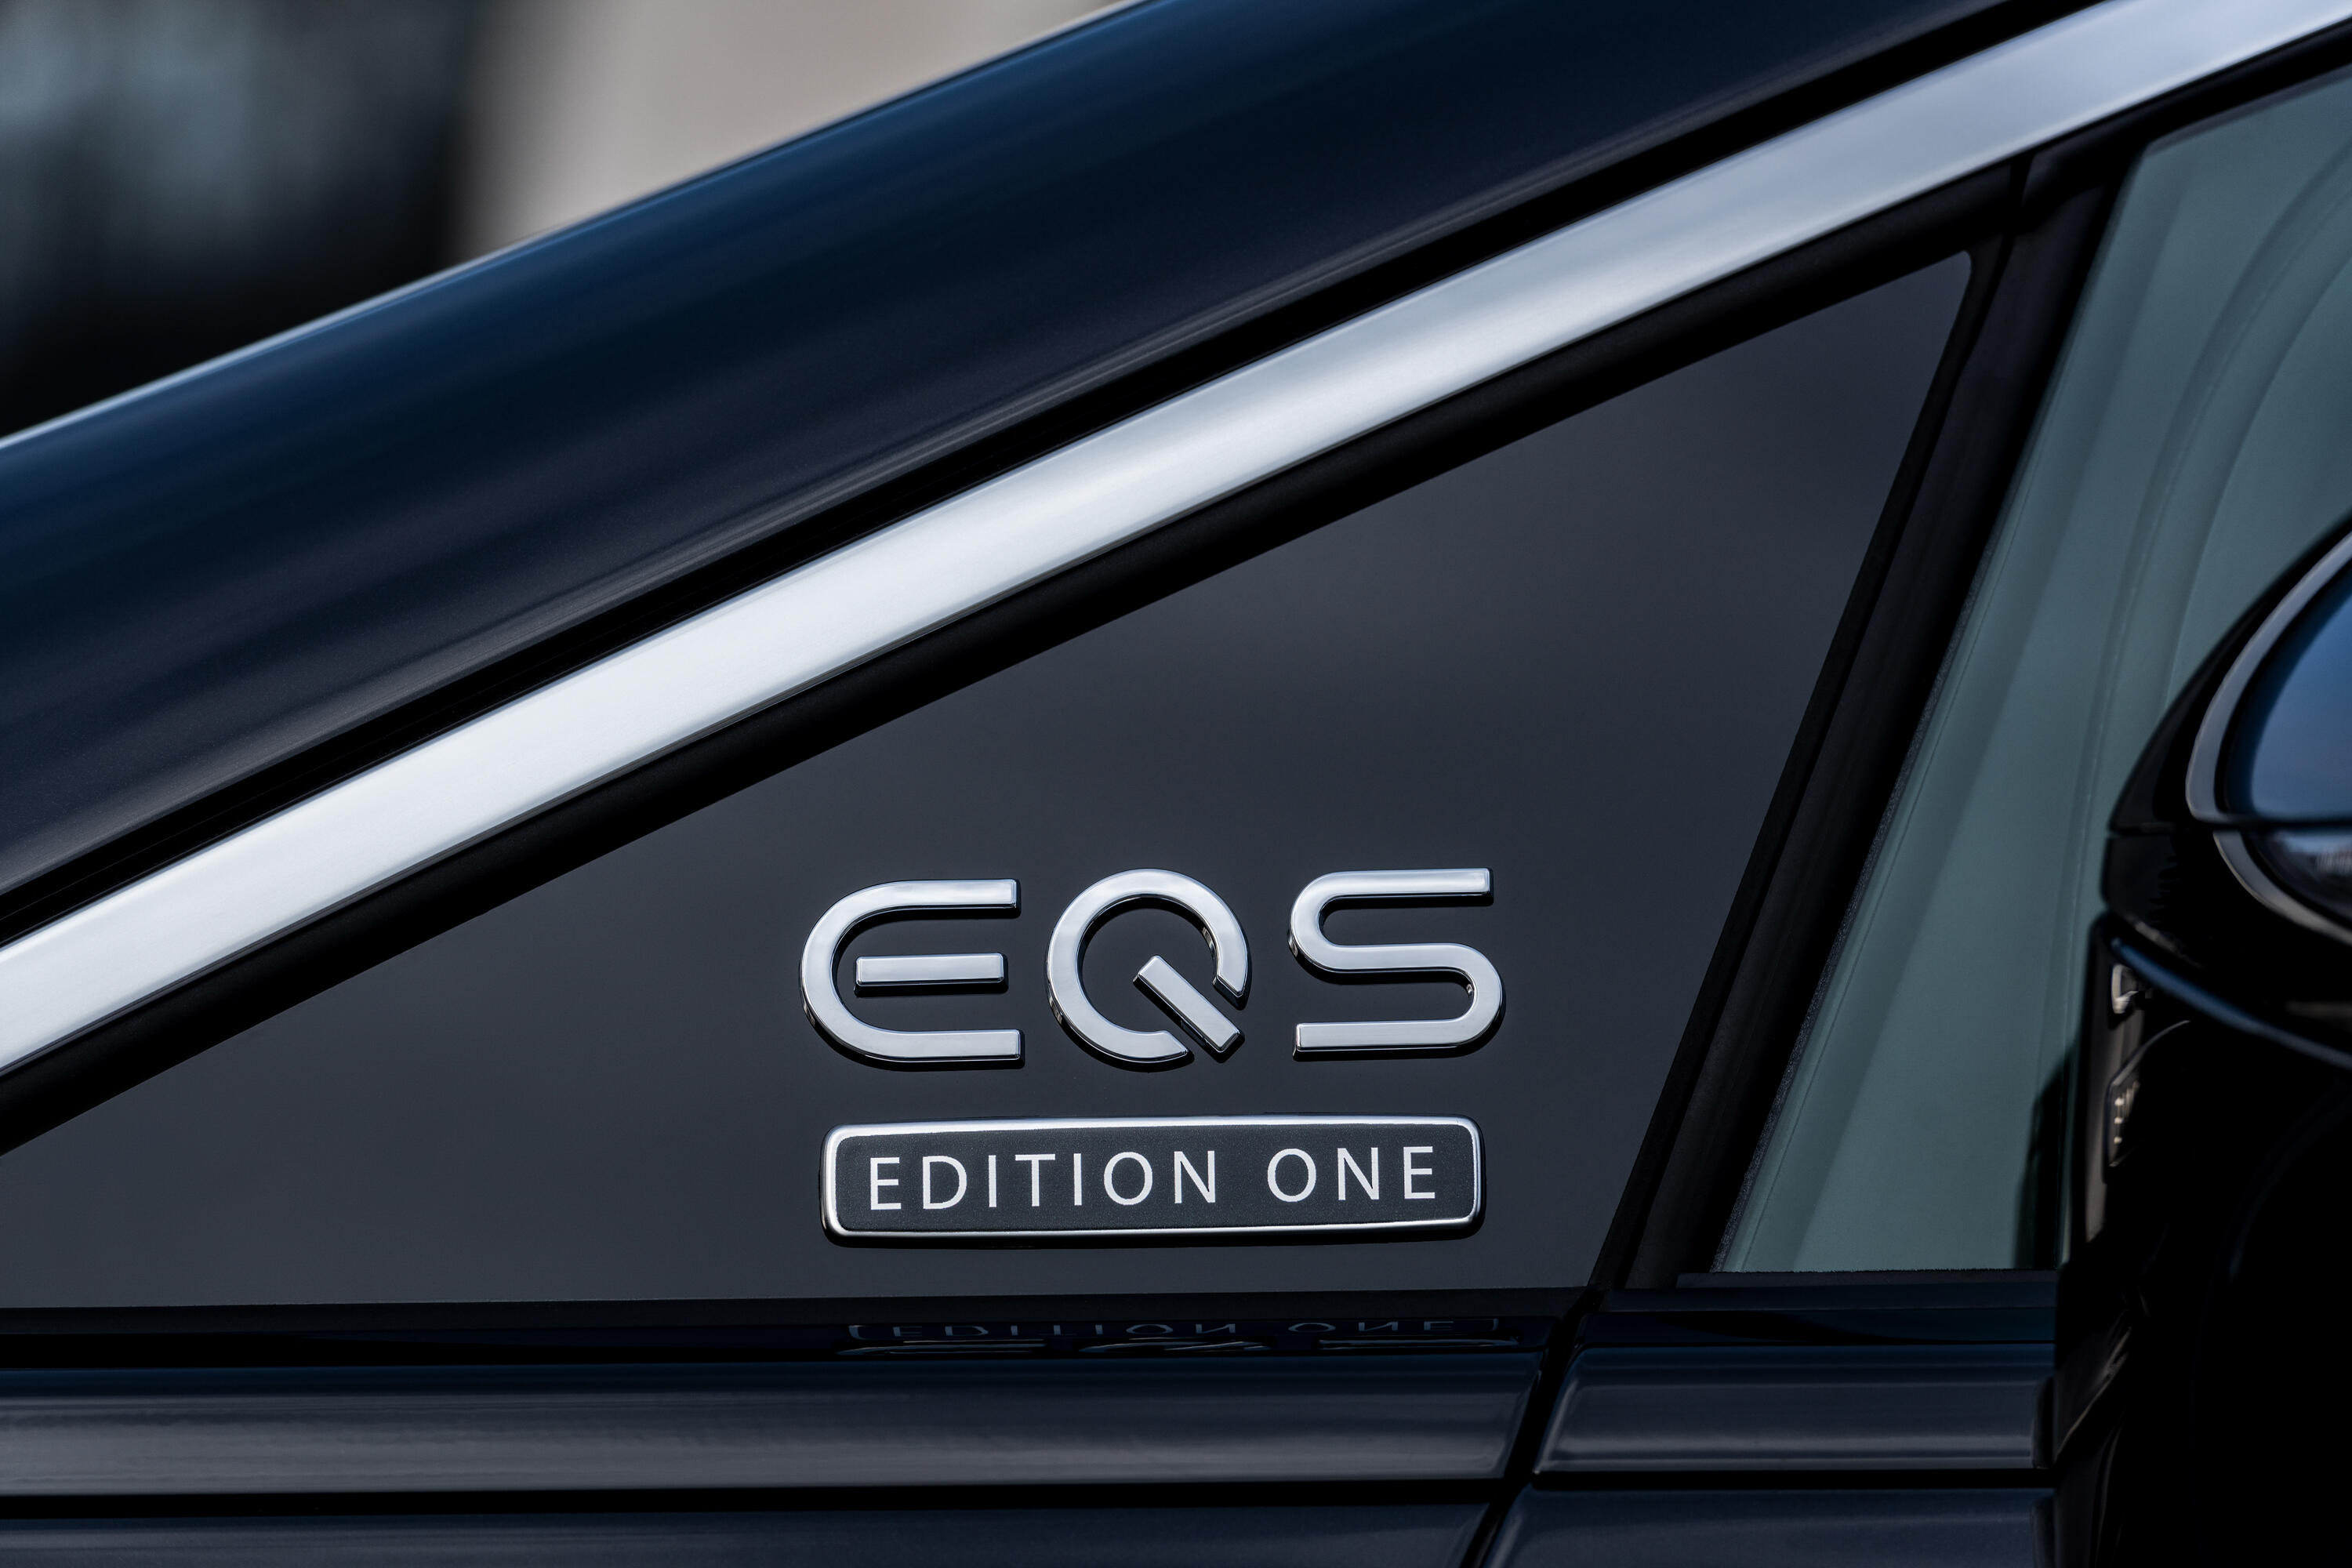 2022 Mercedes-Benz EQS Edition One